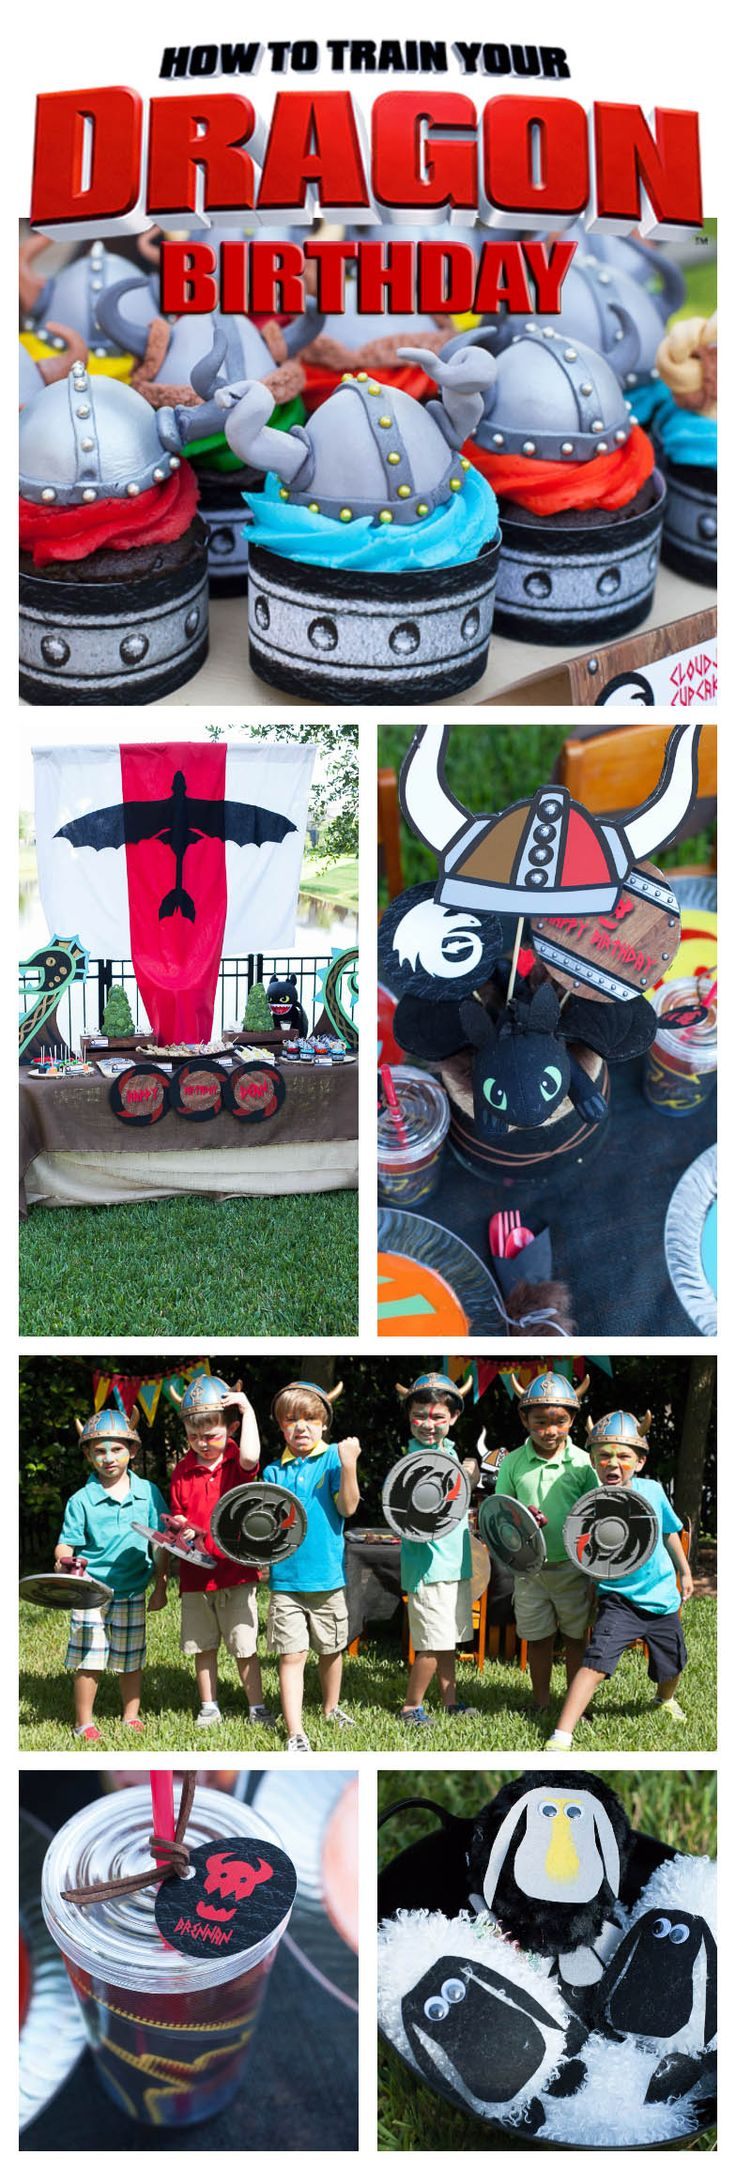 How to Train Your Dragon Birthday Party - Part II - Party Games! - Frog Prince Paperie